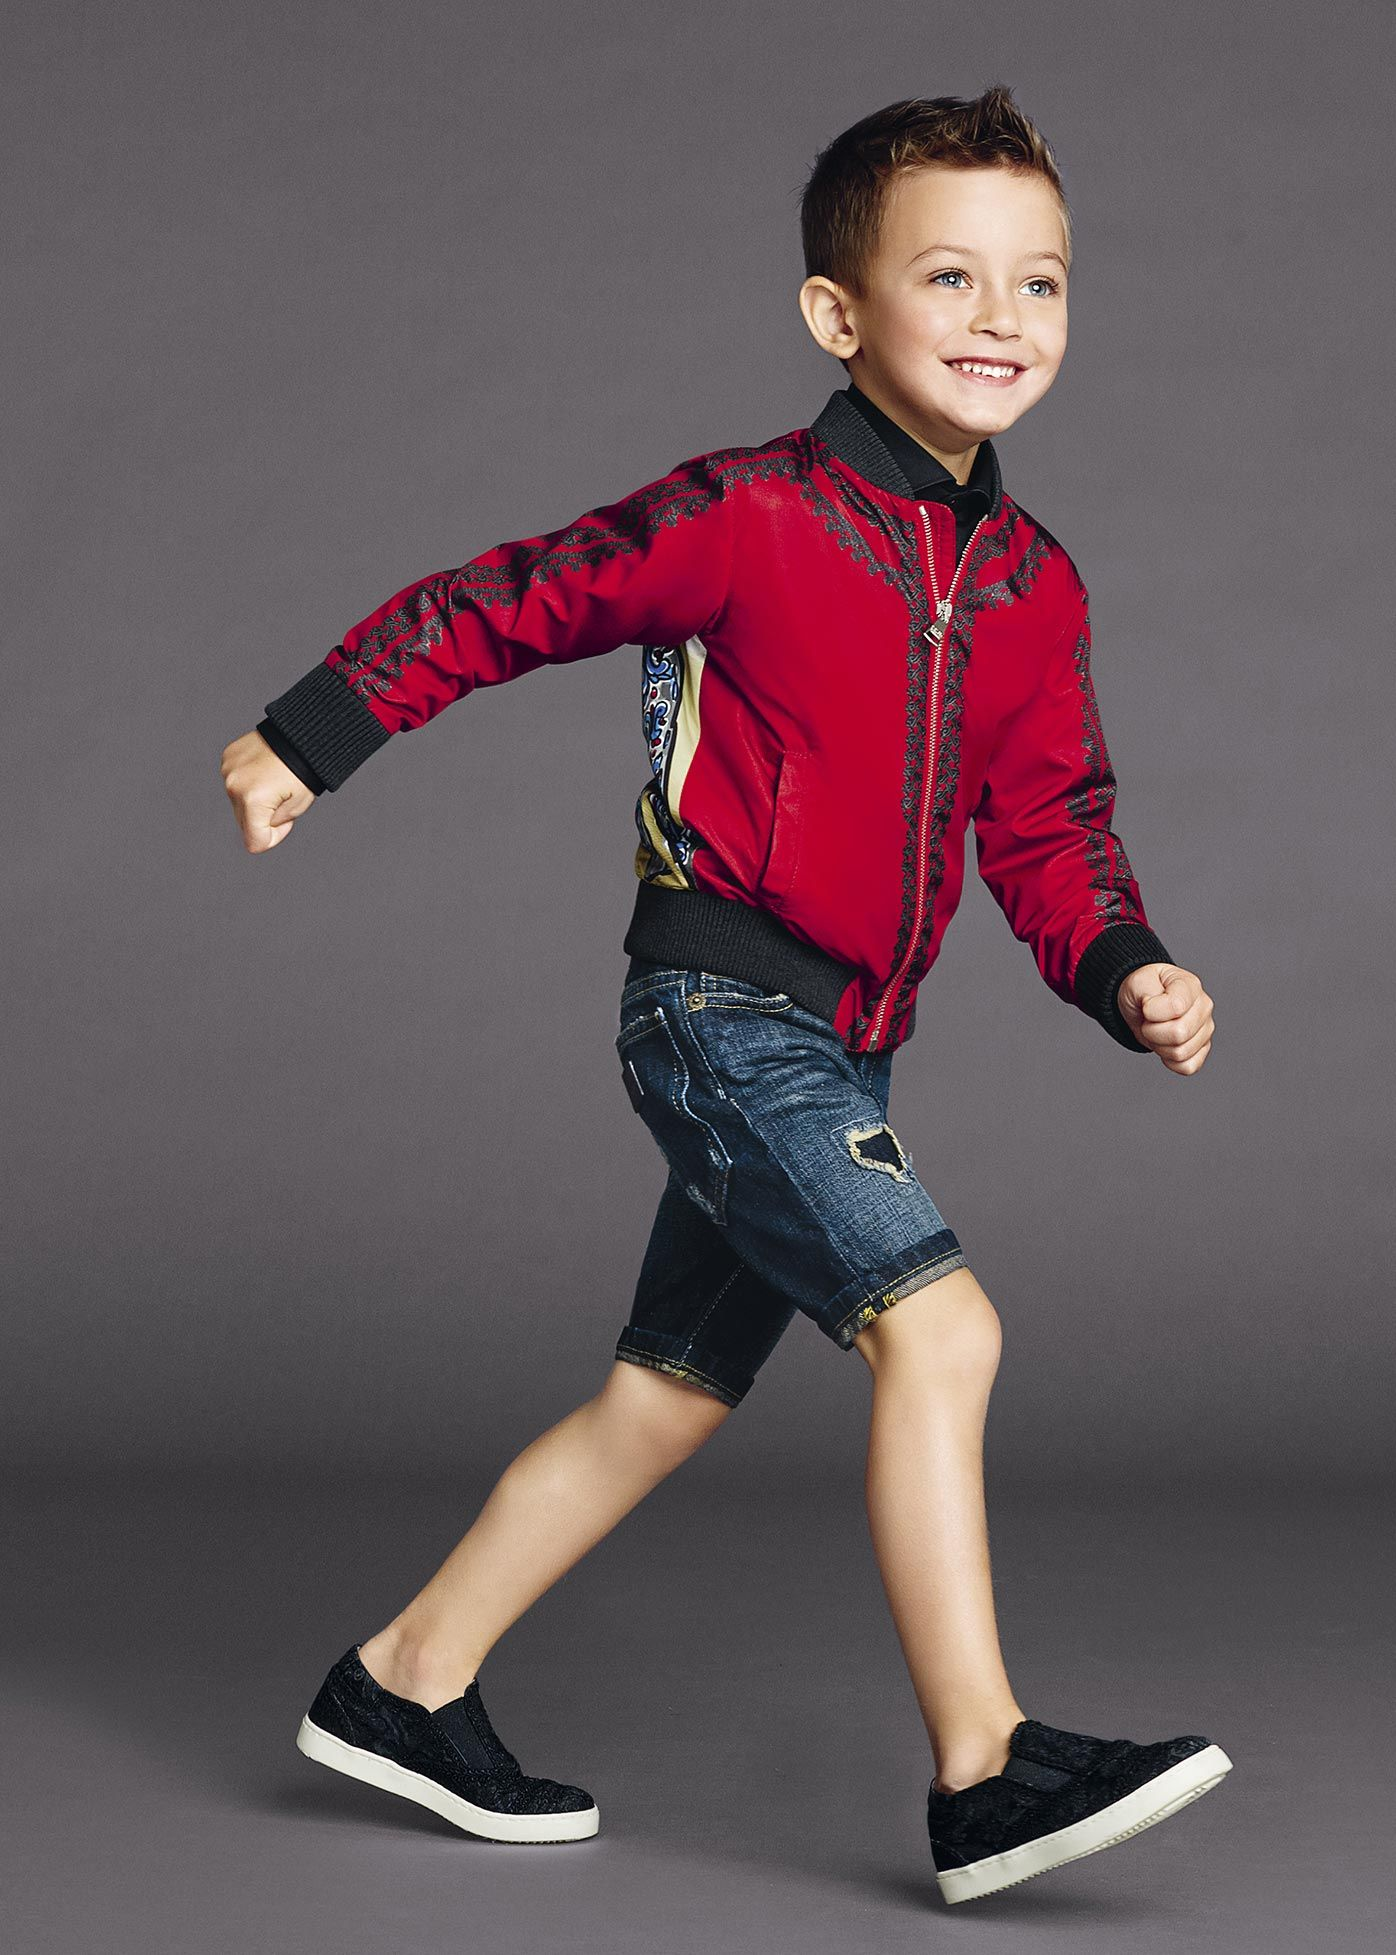 dolce-and-gabbana-summer-2015-child-collection-60-zoom.jpg 1,396×1,955픽셀